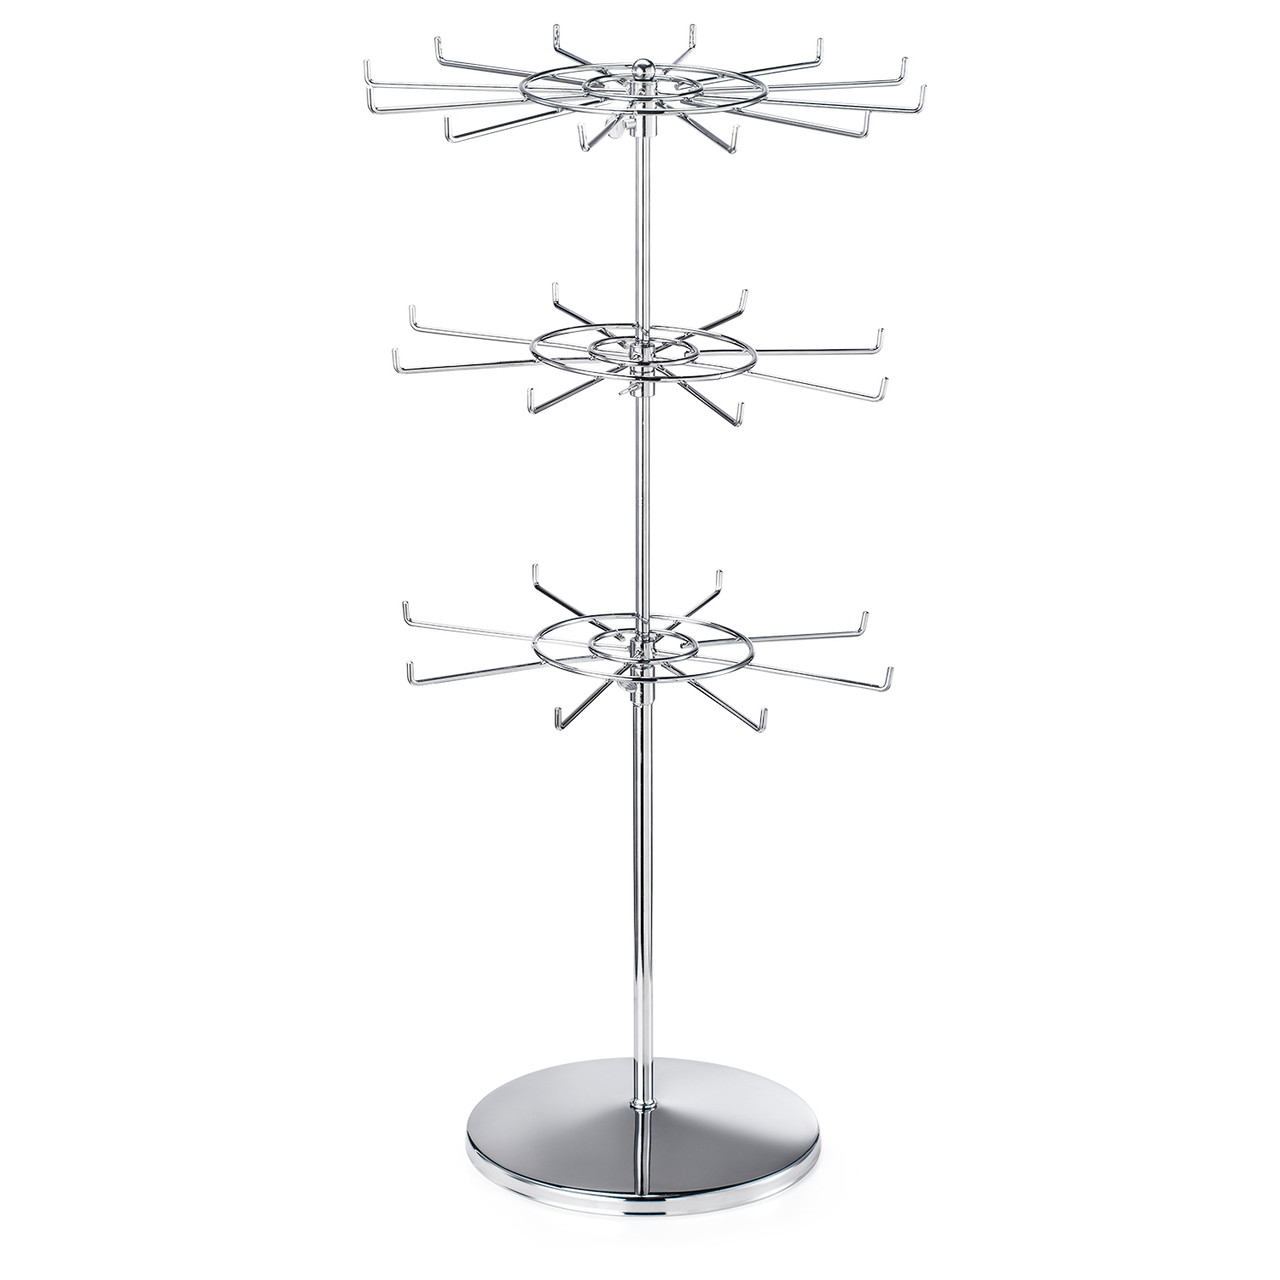 Polmart Countertop Heavy Duty Adjustable Two Tier Spinner Display Stand 6 - Pack